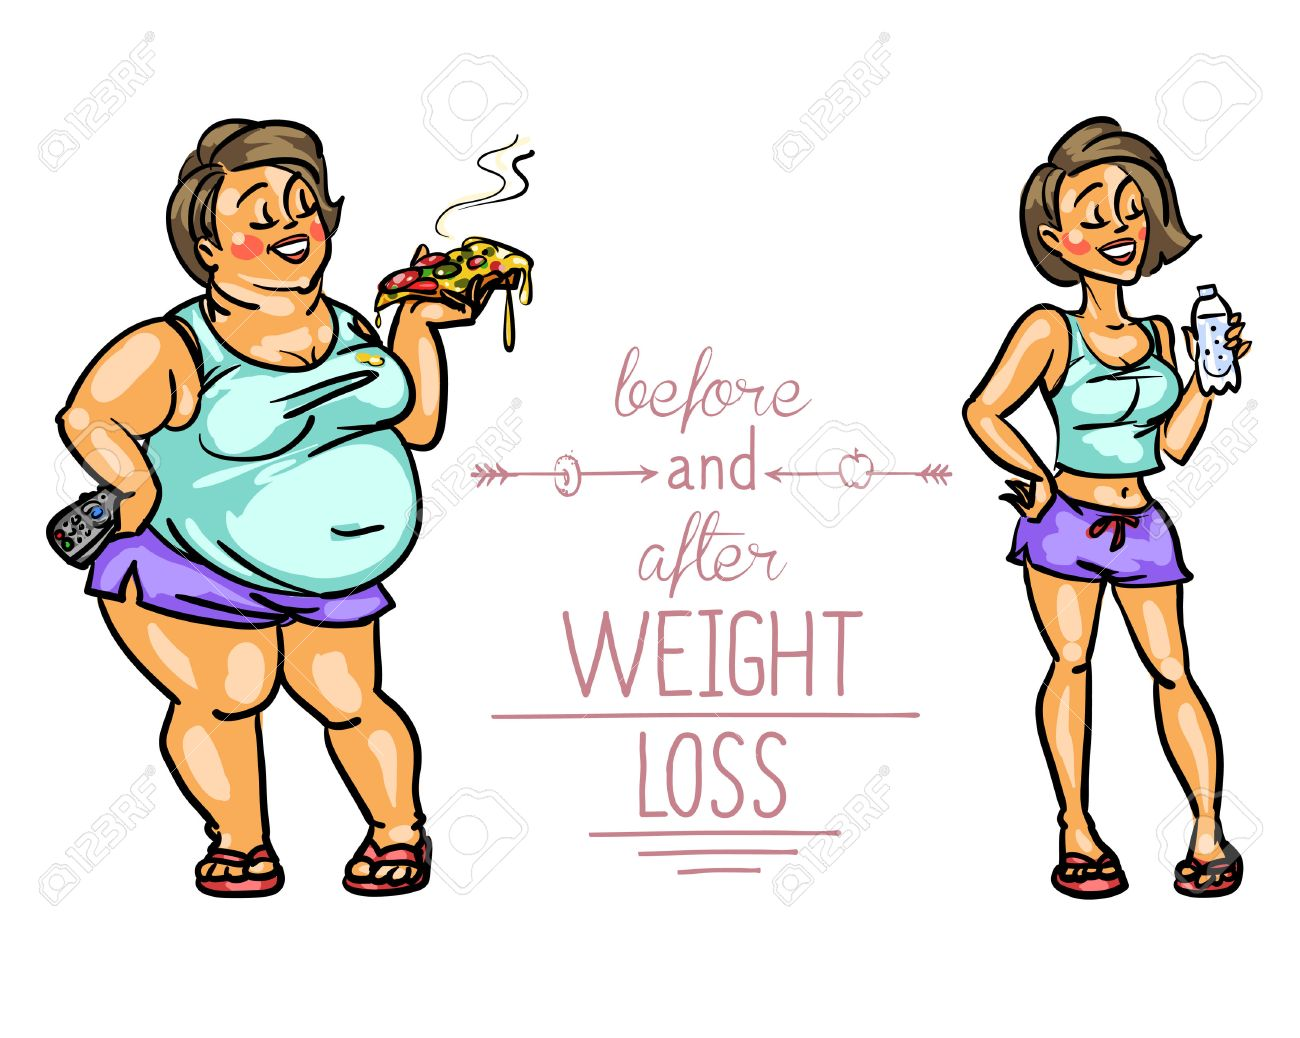 Woman Before And After Weight Loss Cartoon Funny Characters Royalty Free Cliparts Vectors And Stock Illustration Image 43560184